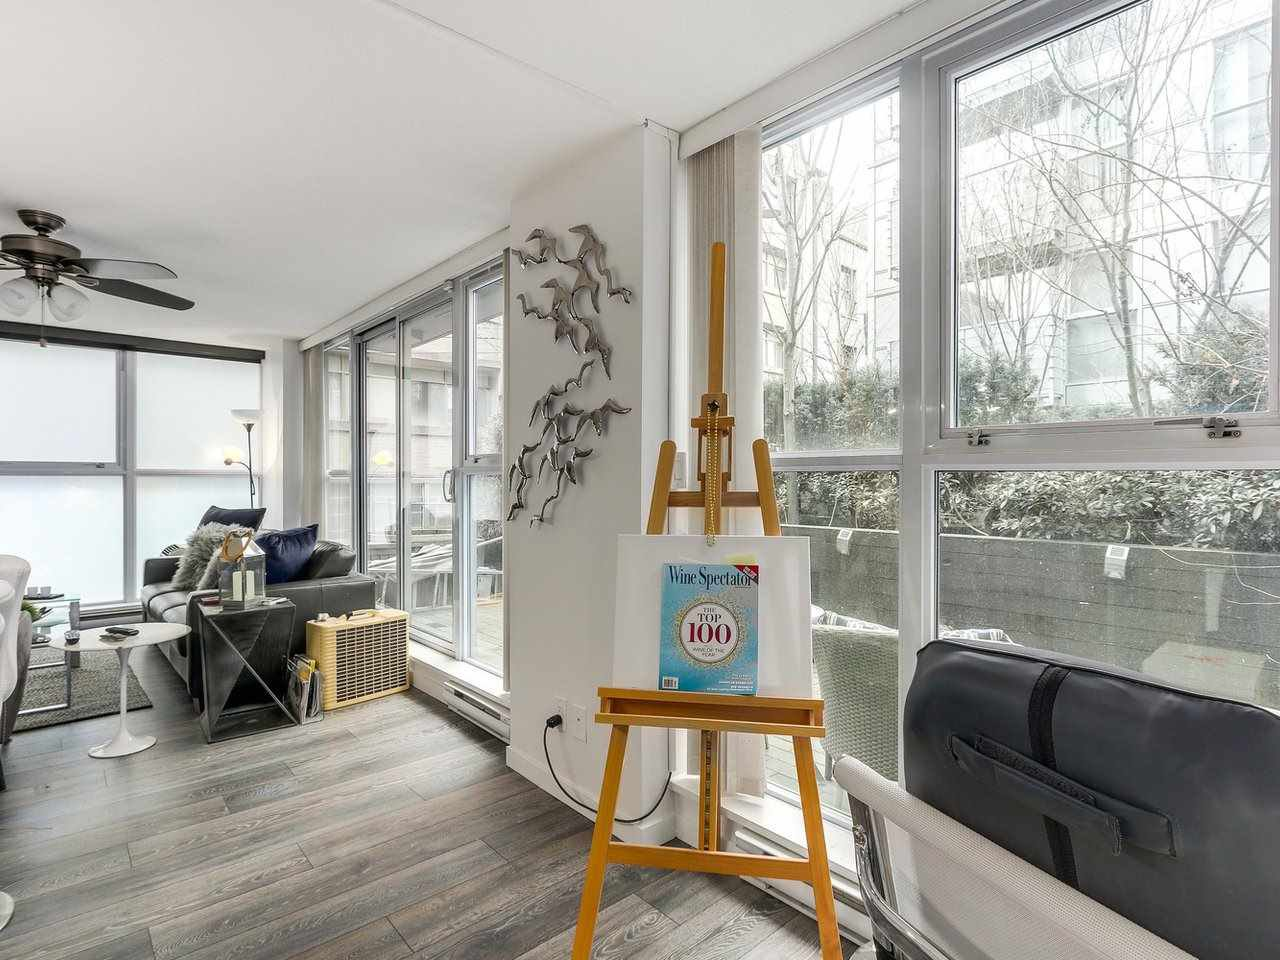 Photo 3: Photos: 217 168 POWELL Street in Vancouver: Downtown VE Condo for sale (Vancouver East)  : MLS®# R2386644